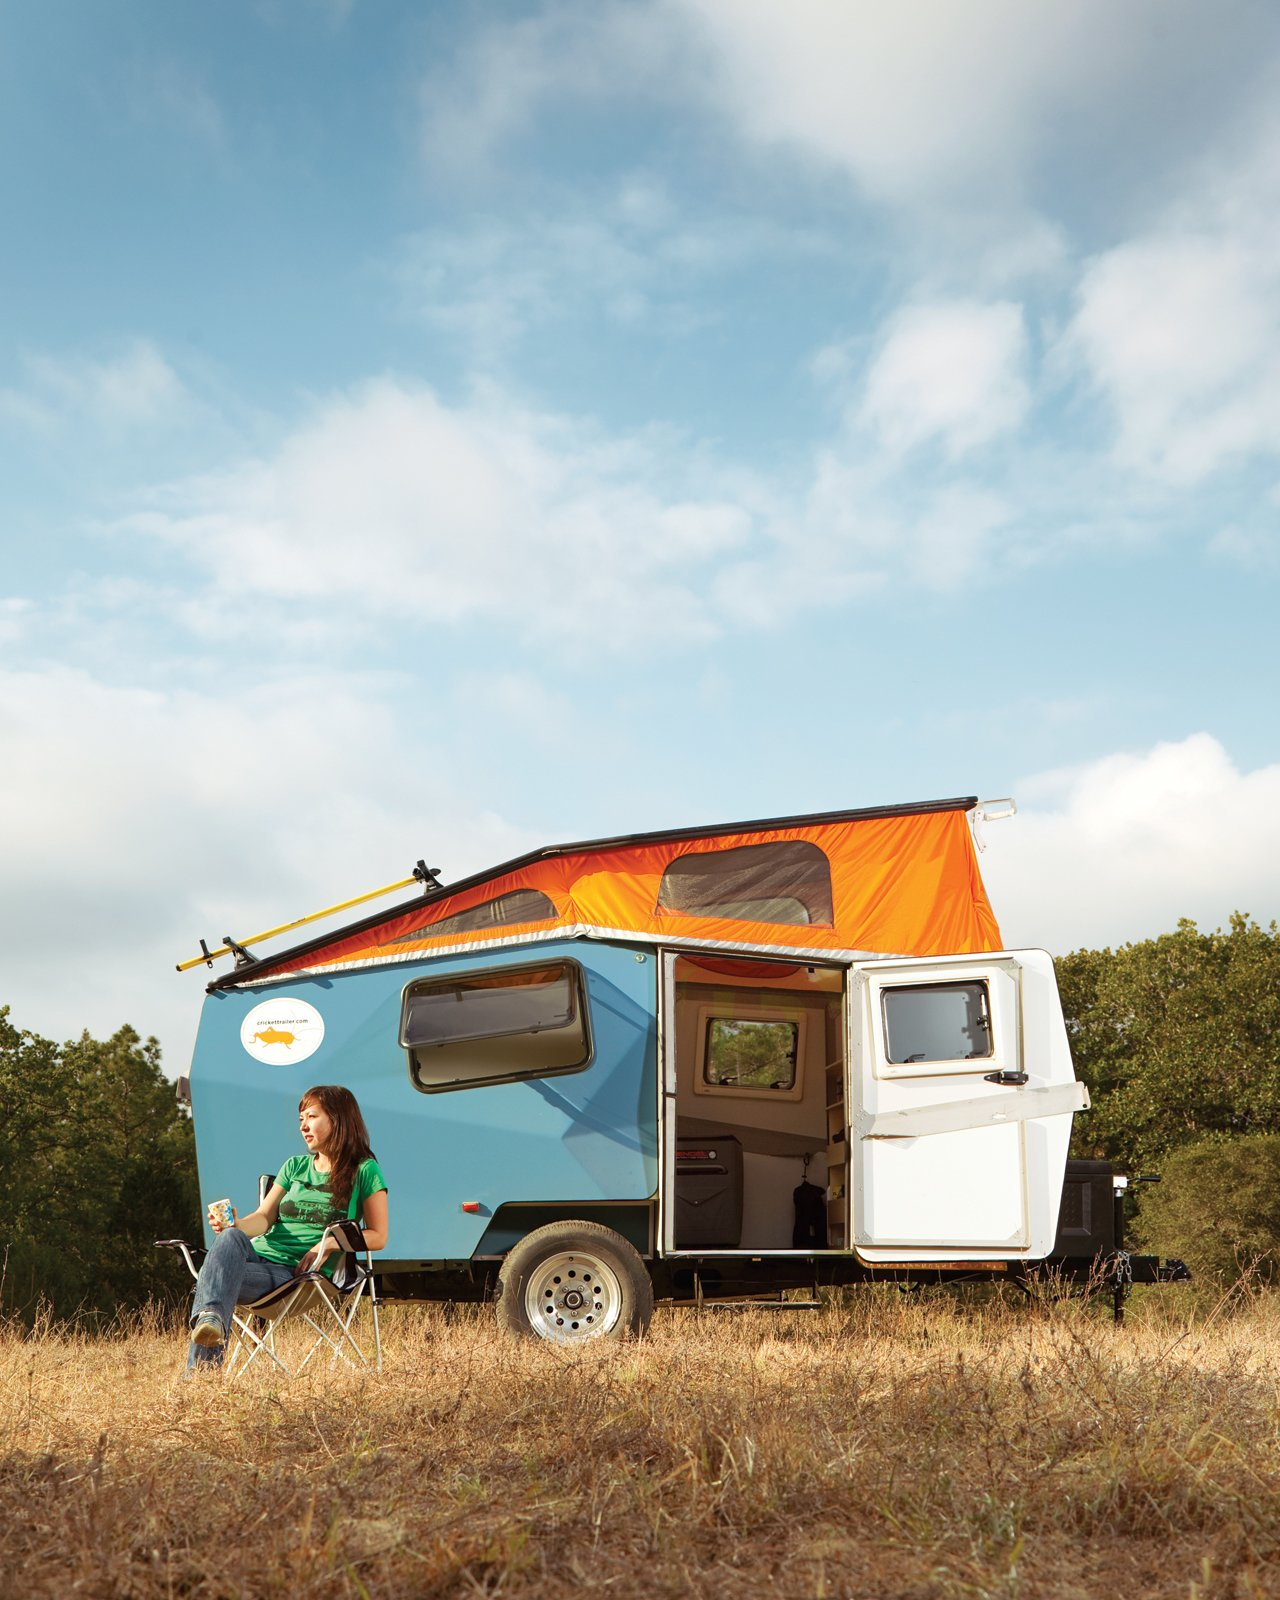 Exterior, Metal Siding Material, Camper Building Type, and Tent Building Type Part tent, part RV, the NASA-inspired Cricket Trailer is the go-to camper for the modern road tripper.  Best Photos from 10 Tiny Trailers to Take on an Adventure